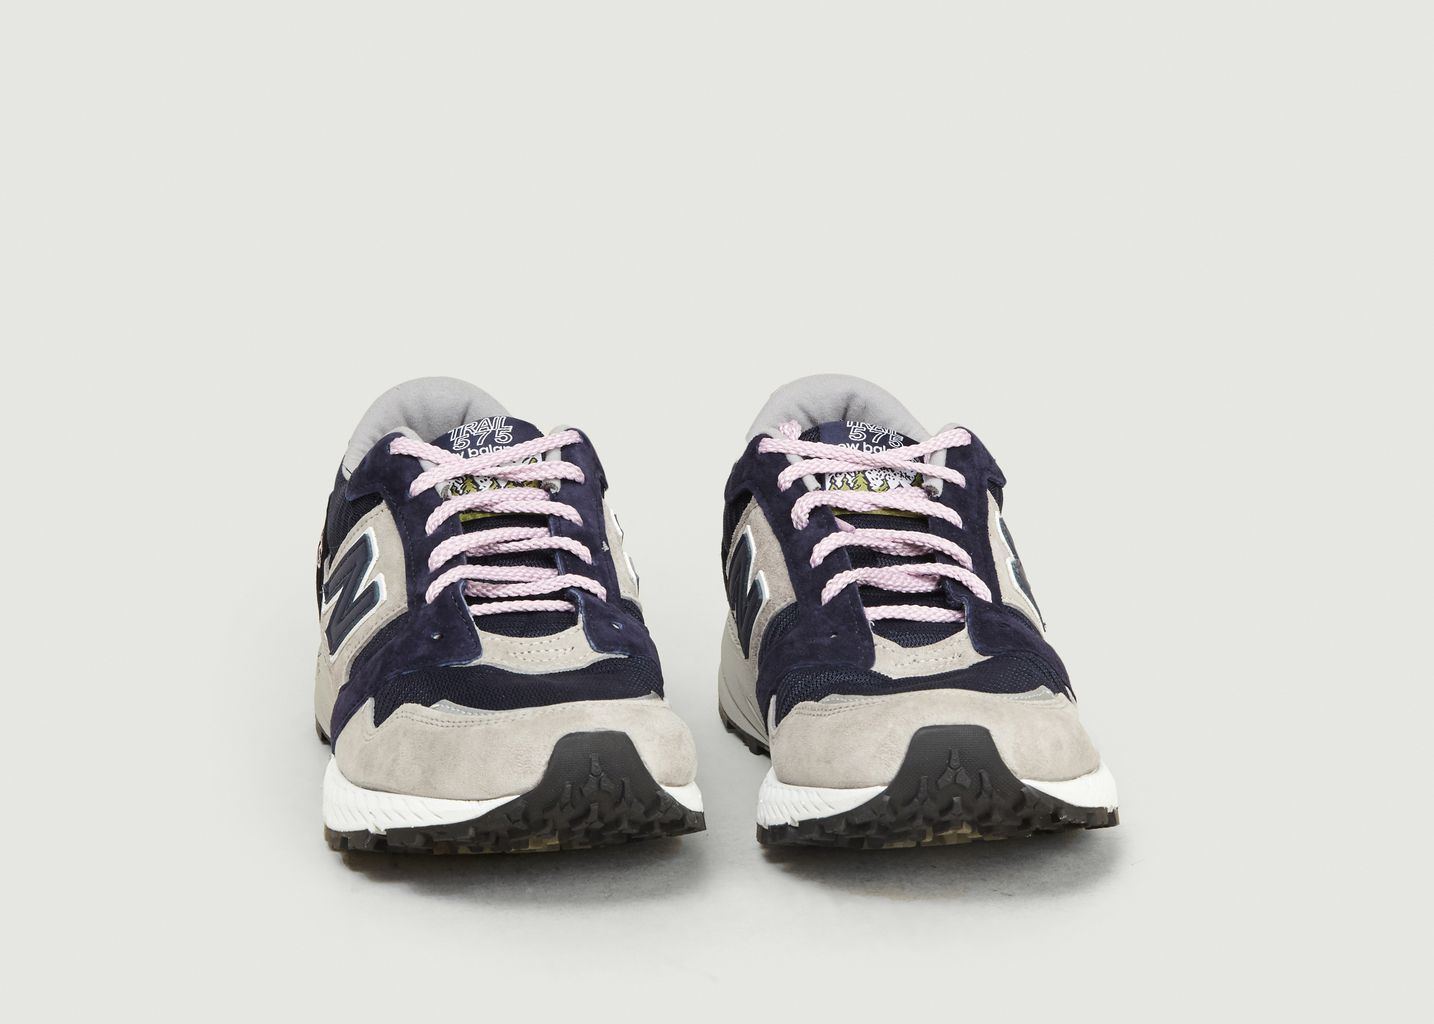 Sneakers MTL575NL Made in UK - New Balance